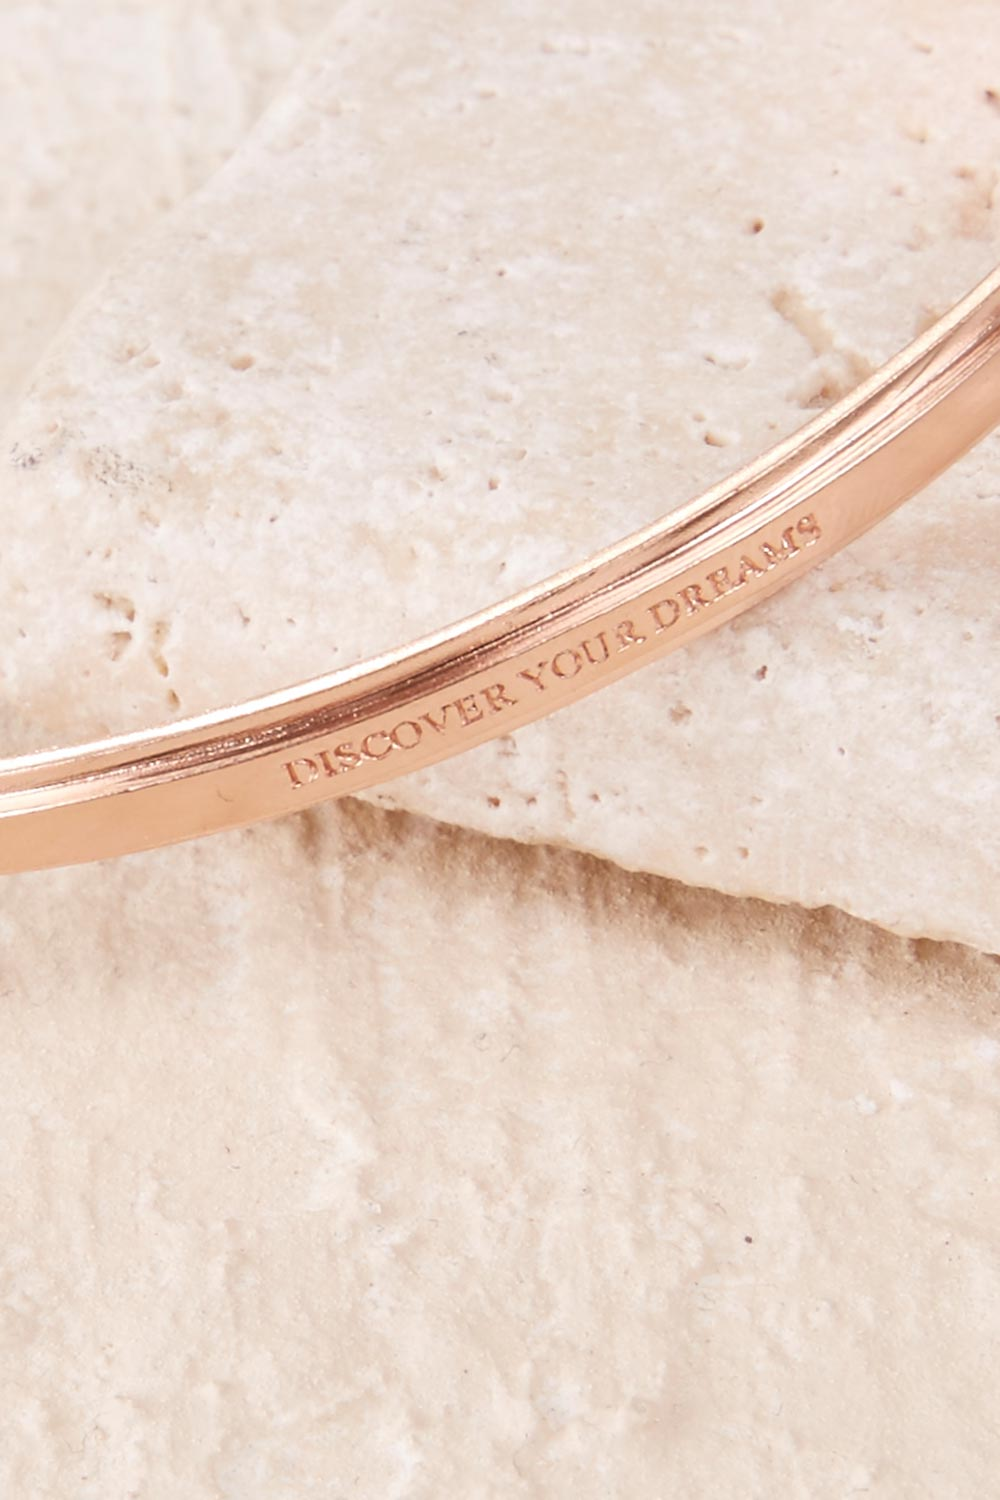 NEW-Nicole-Fendel-Womens-Bracelets-Sml-Discover-Your-Dreams-Cuff